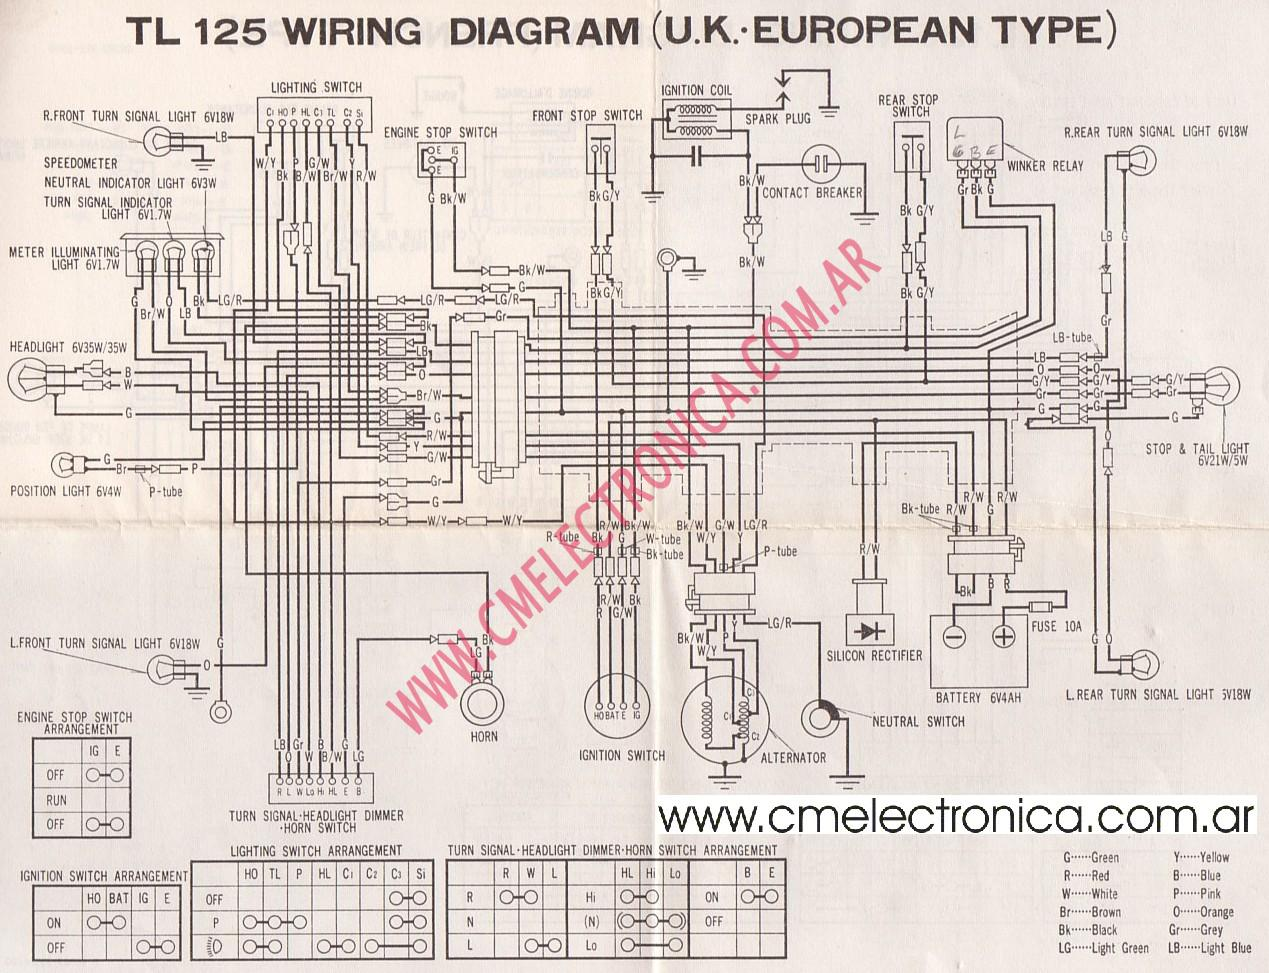 Honda Sh 125i Wiring Diagram Manual Of 125s Tl125 Schematics Rh Thyl Co Uk 125